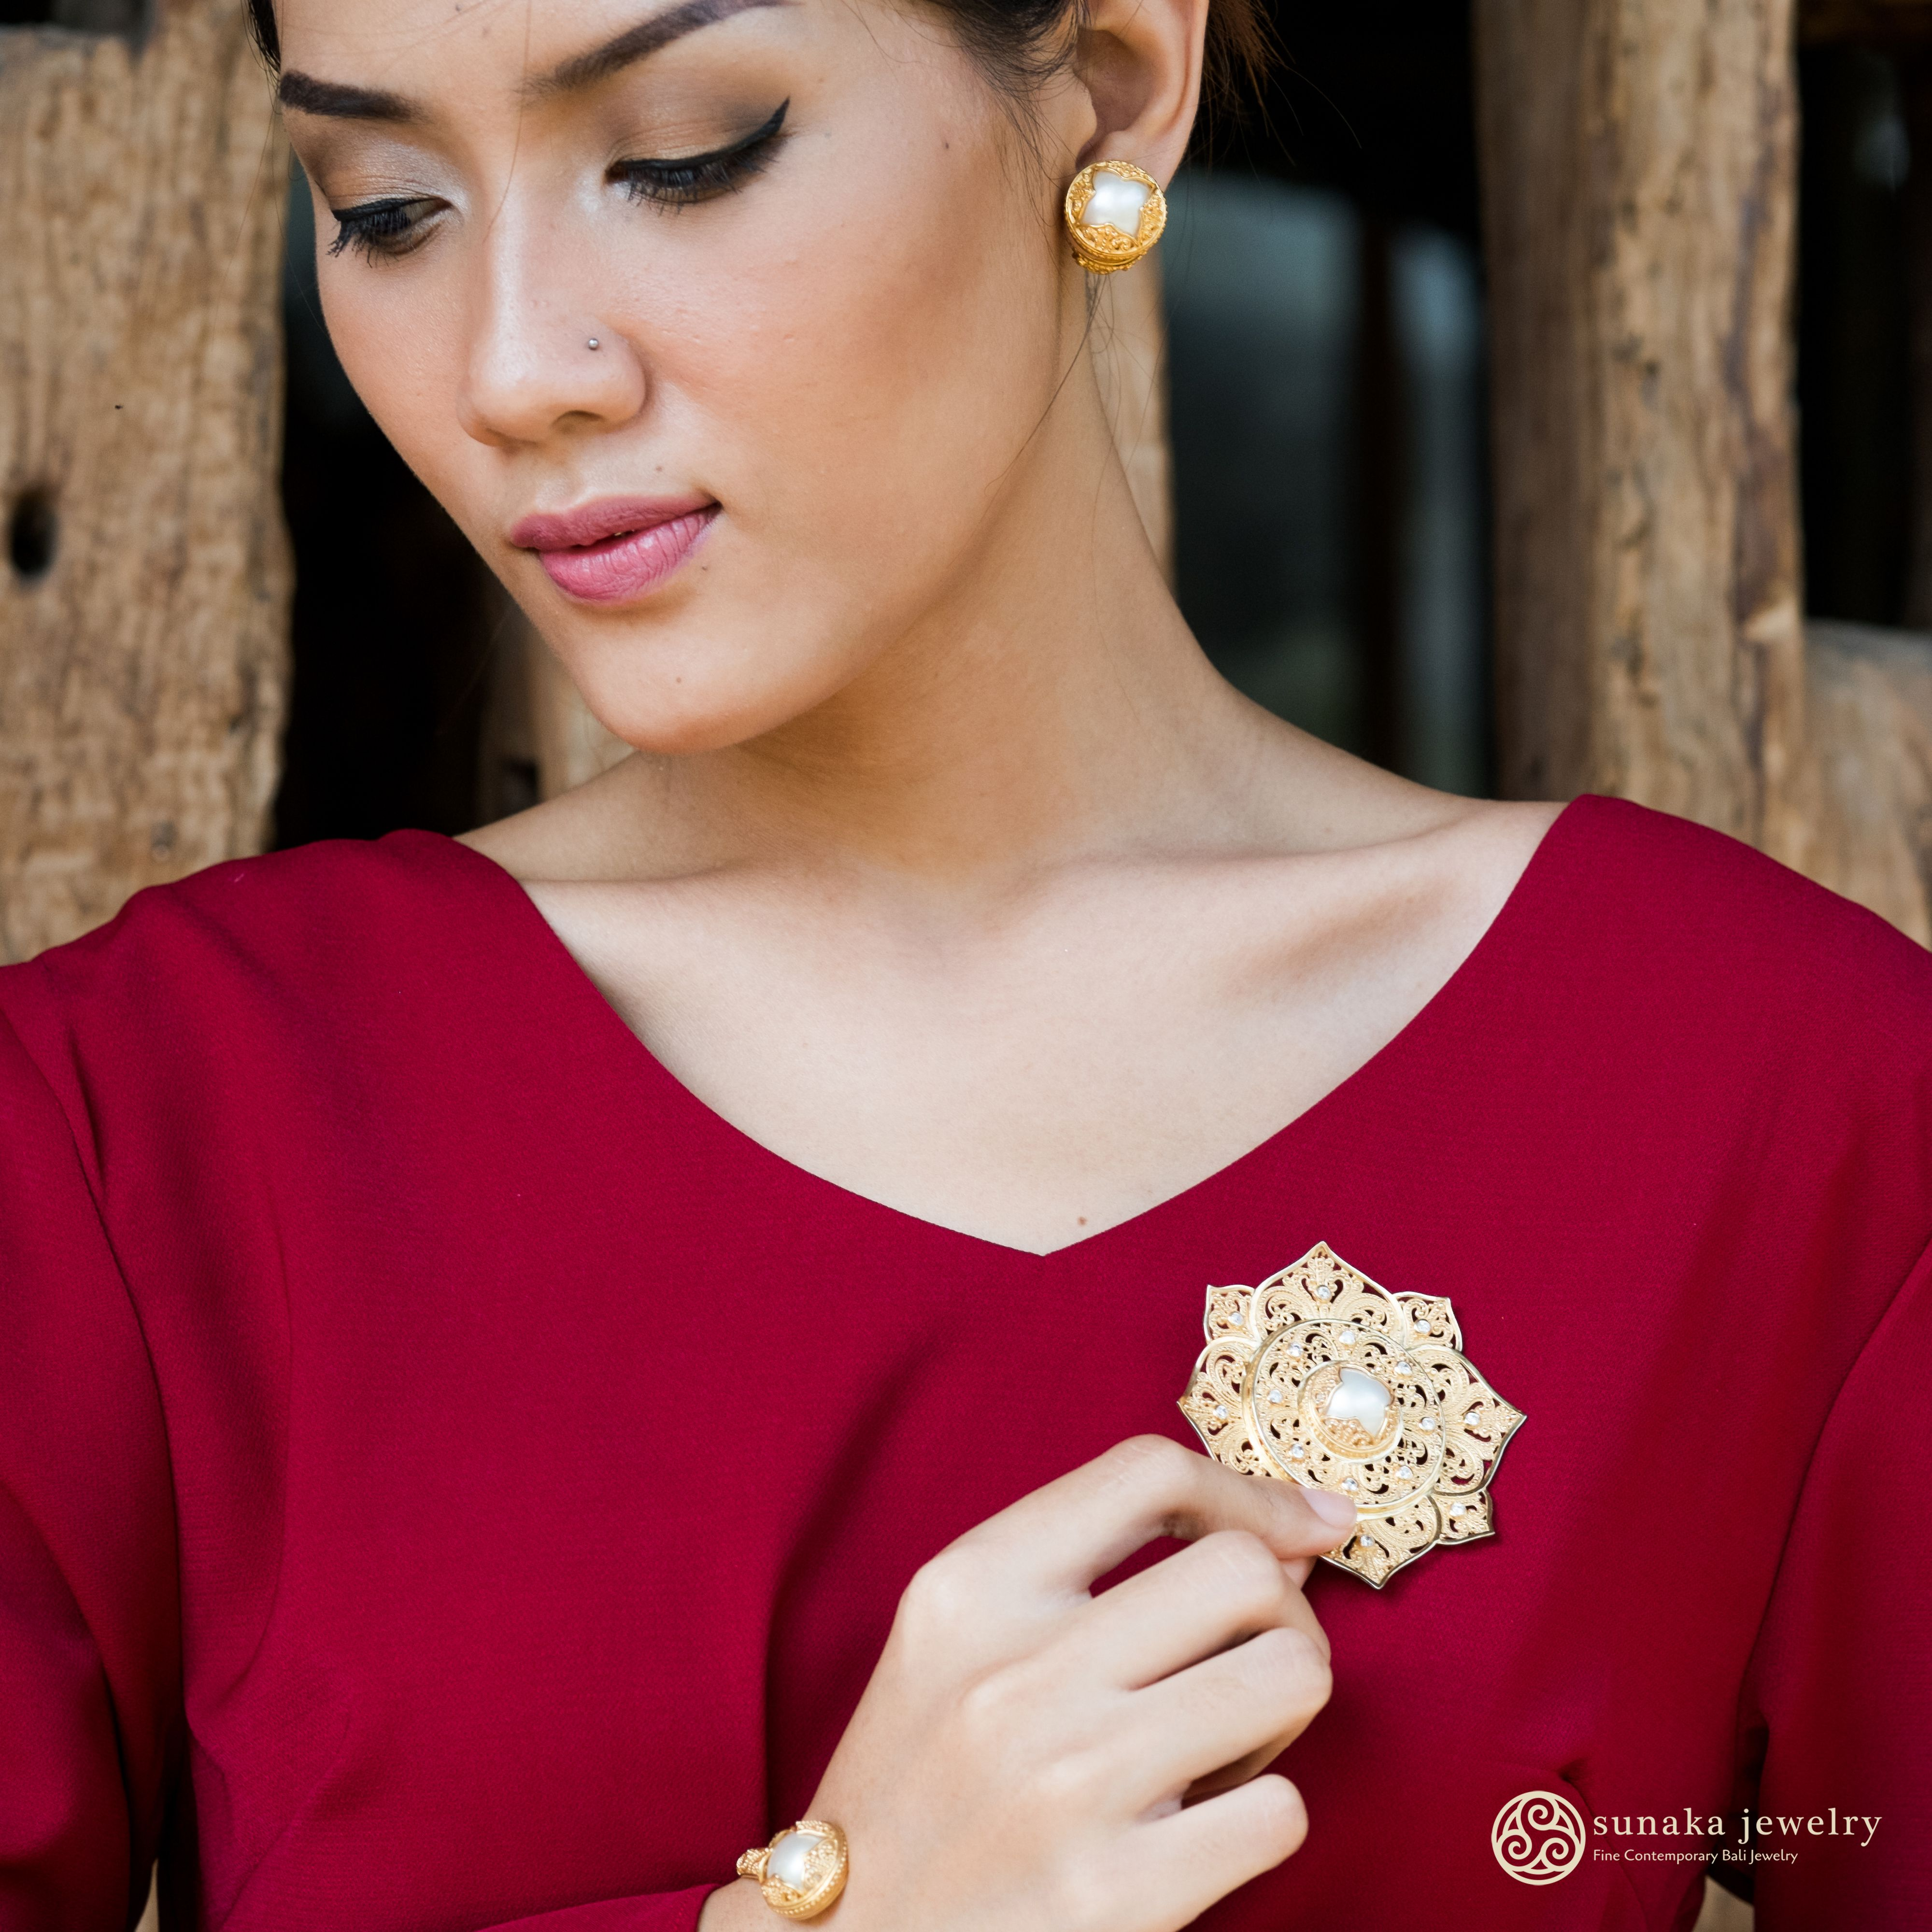 This silver collection jewelry of Padma Acala is inspired by lotus flower where Dewi Saraswati, a Hindu's Goddess of Knowledge, seated. This white lotus symbolizes light, knowledge, wisdom, and truth. To represent the real meaning behind this design, we use only the selected high-quality Mabe Pearls from Lombok, Indonesia.